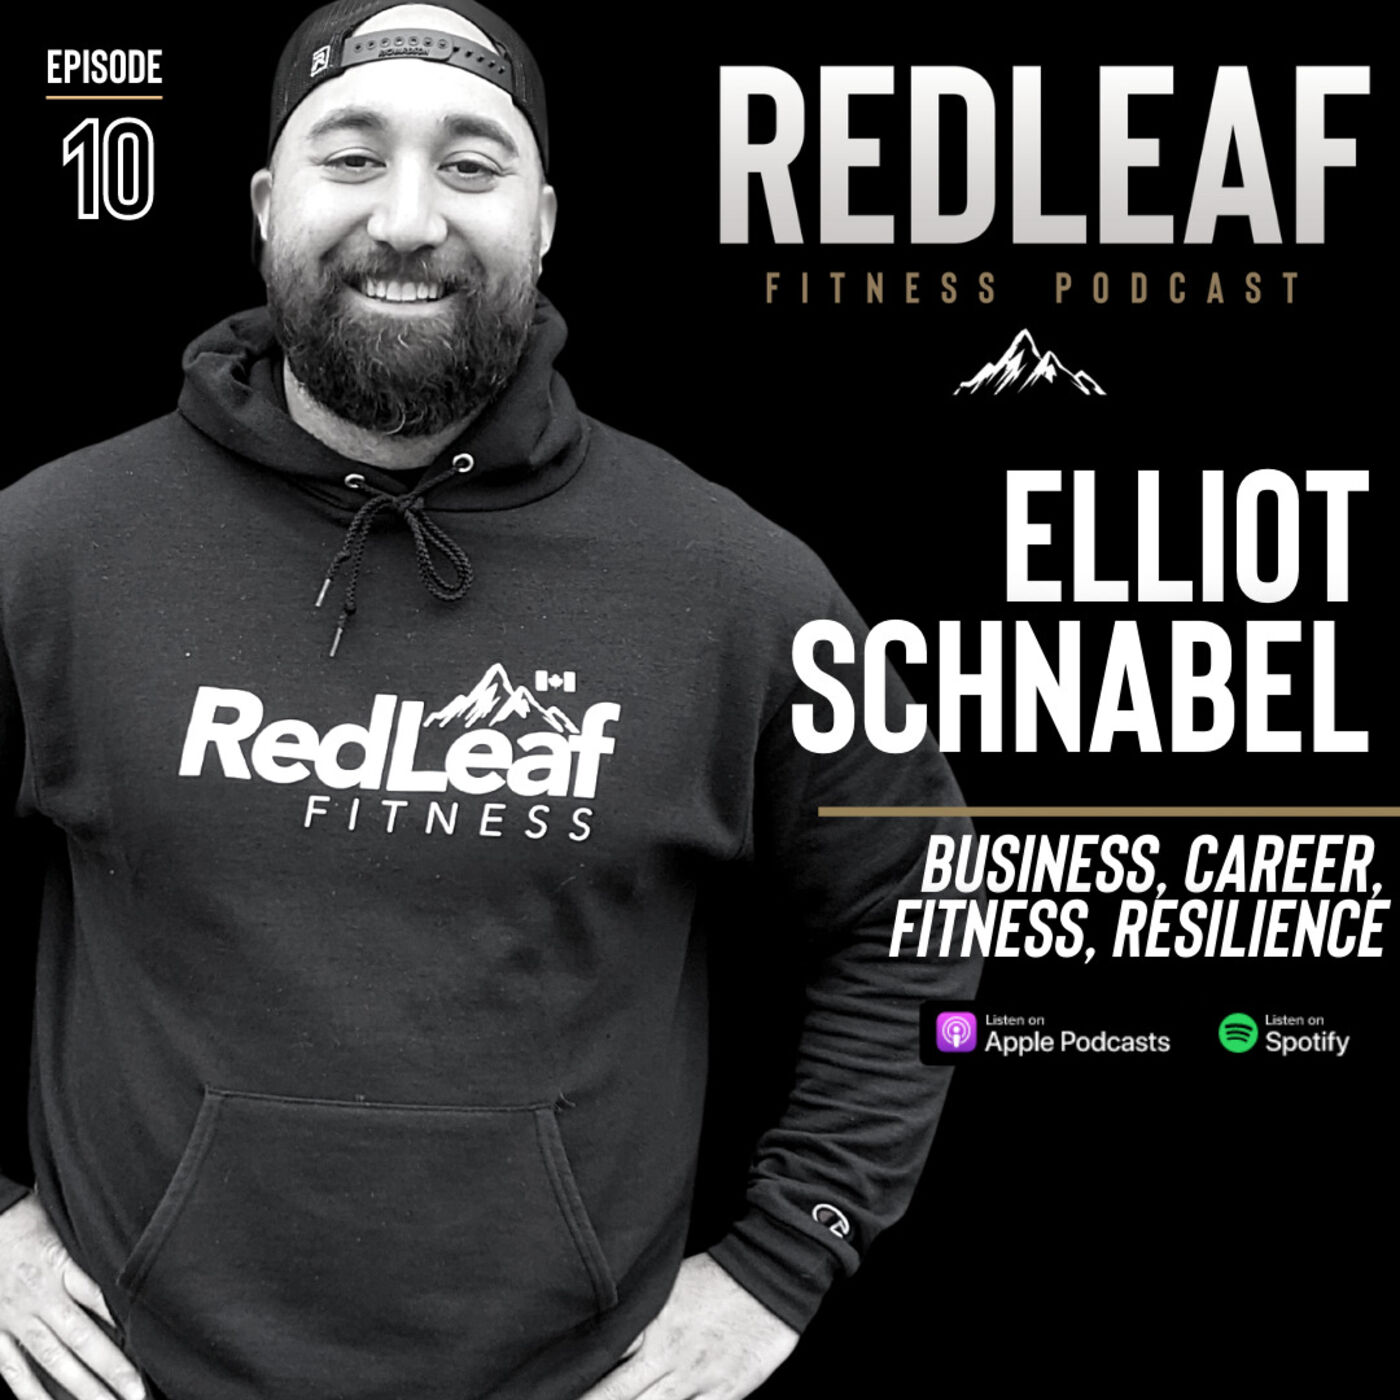 Ep.10 | Coach Elliot Schnabel on Business, Career, Fitness, Resilience